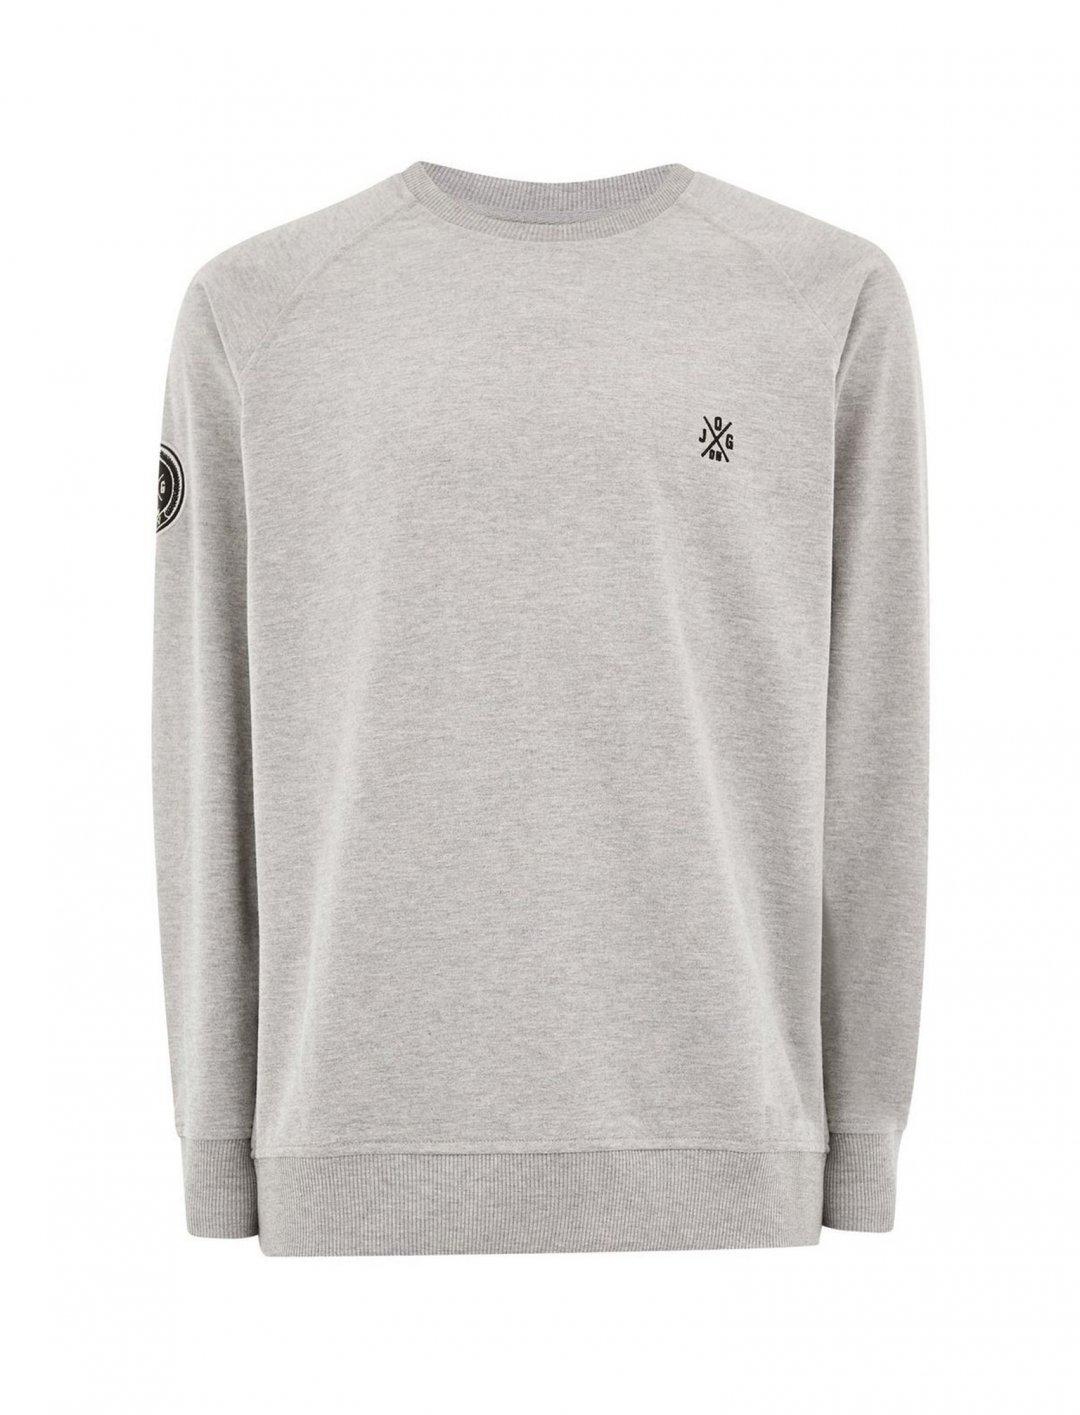 "Sweatshirt In Grey {""id"":5,""product_section_id"":1,""name"":""Clothing"",""order"":5} JOG ON"